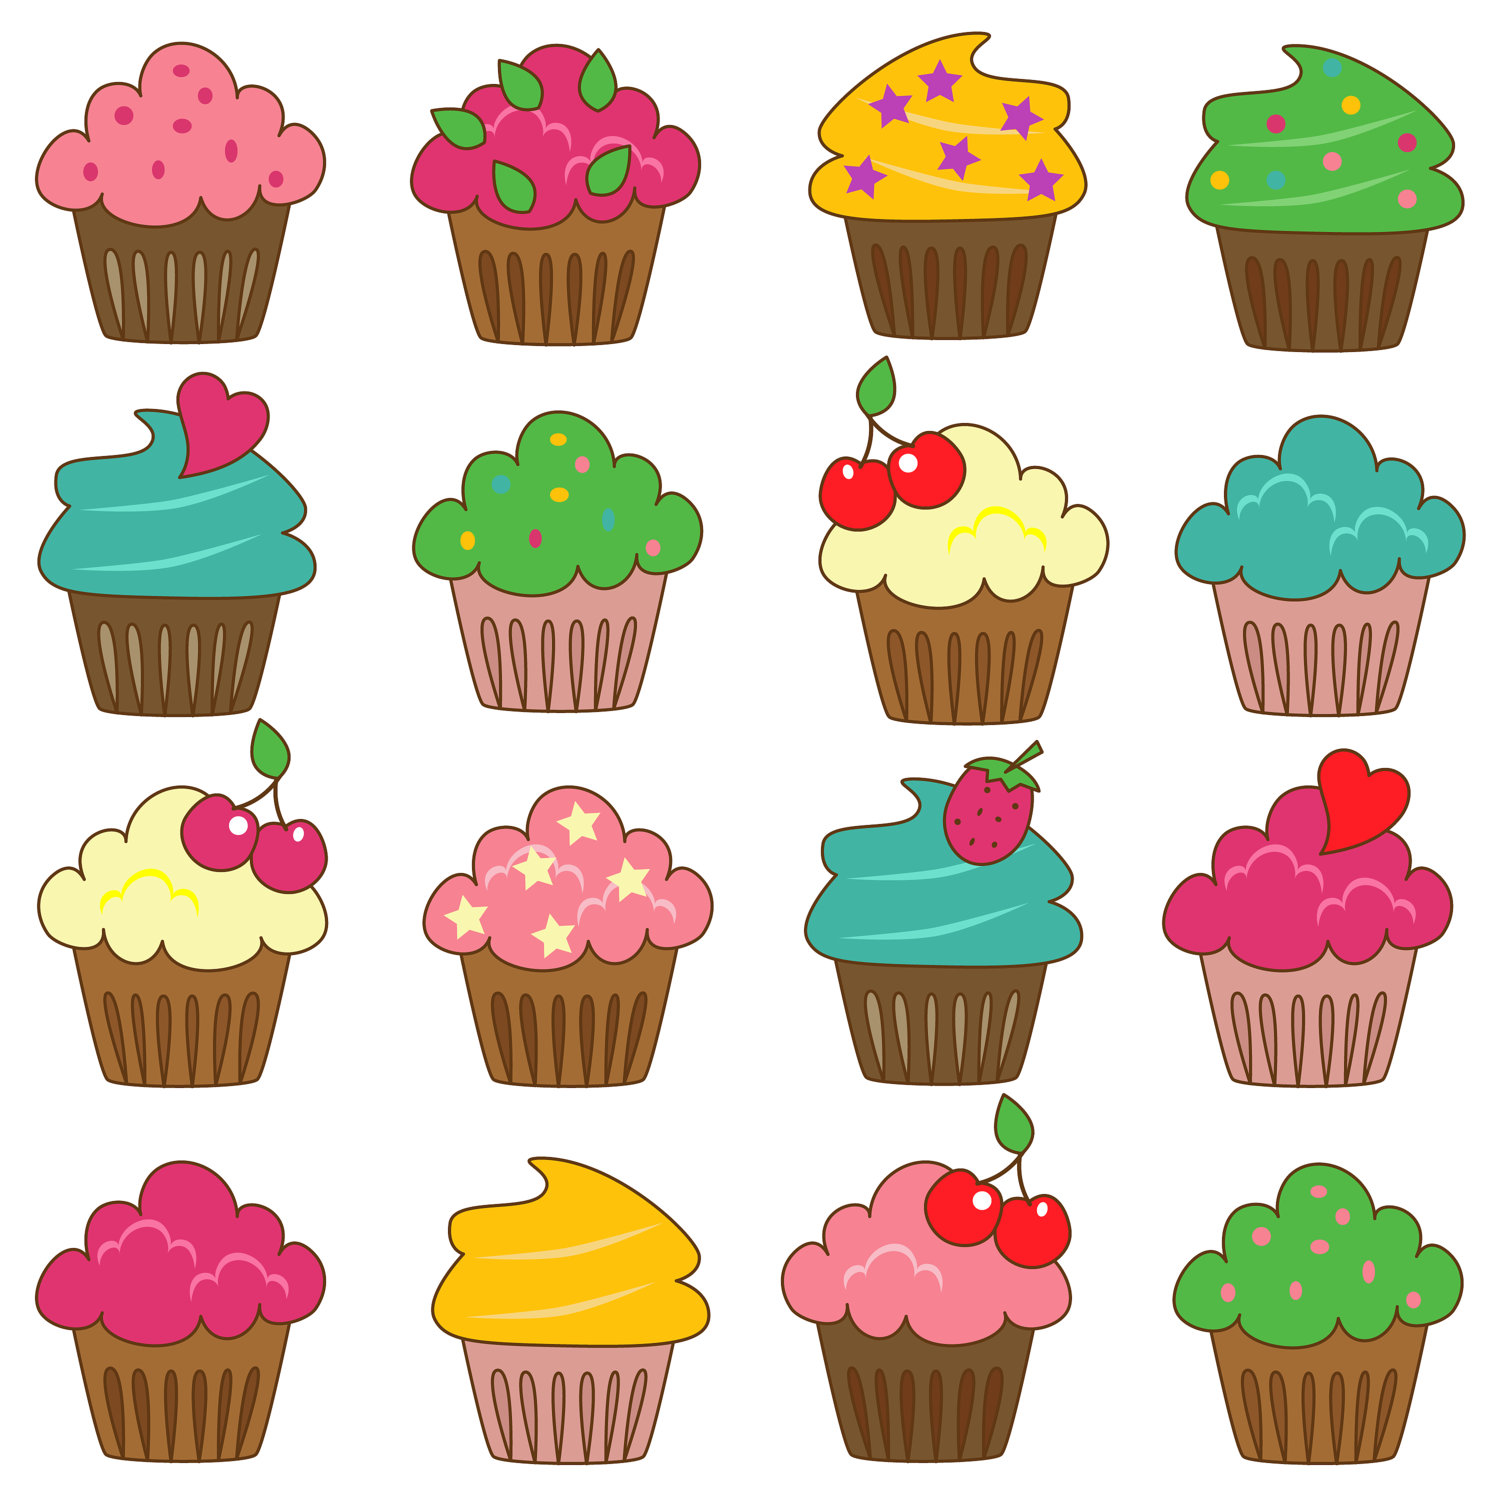 clip art royalty free download Cupcakes clipart. Free cupcake cliparts download.